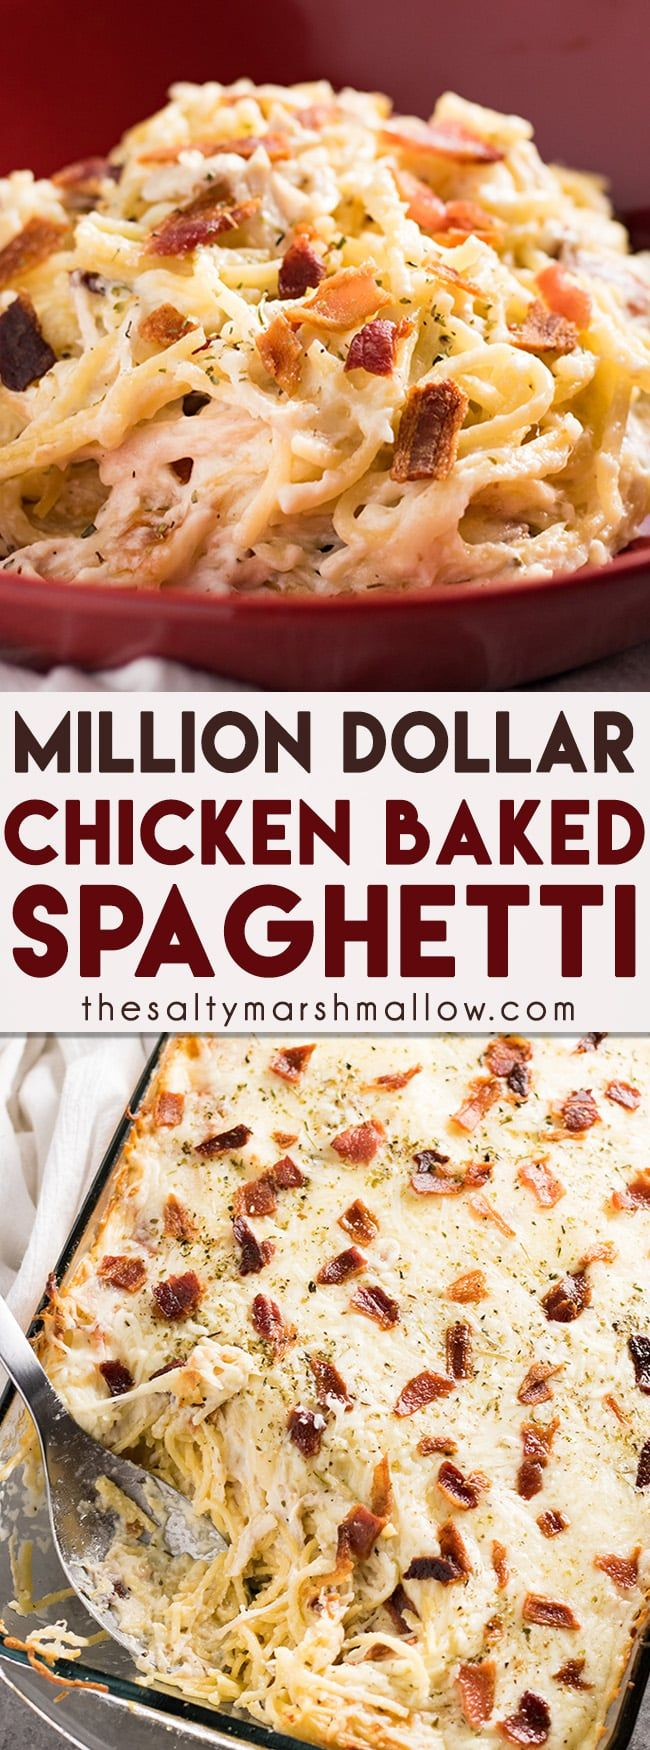 Million Dollar Chicken Spaghetti The Salty Marshmallow Recipe Recipes Chicken Recipes Food